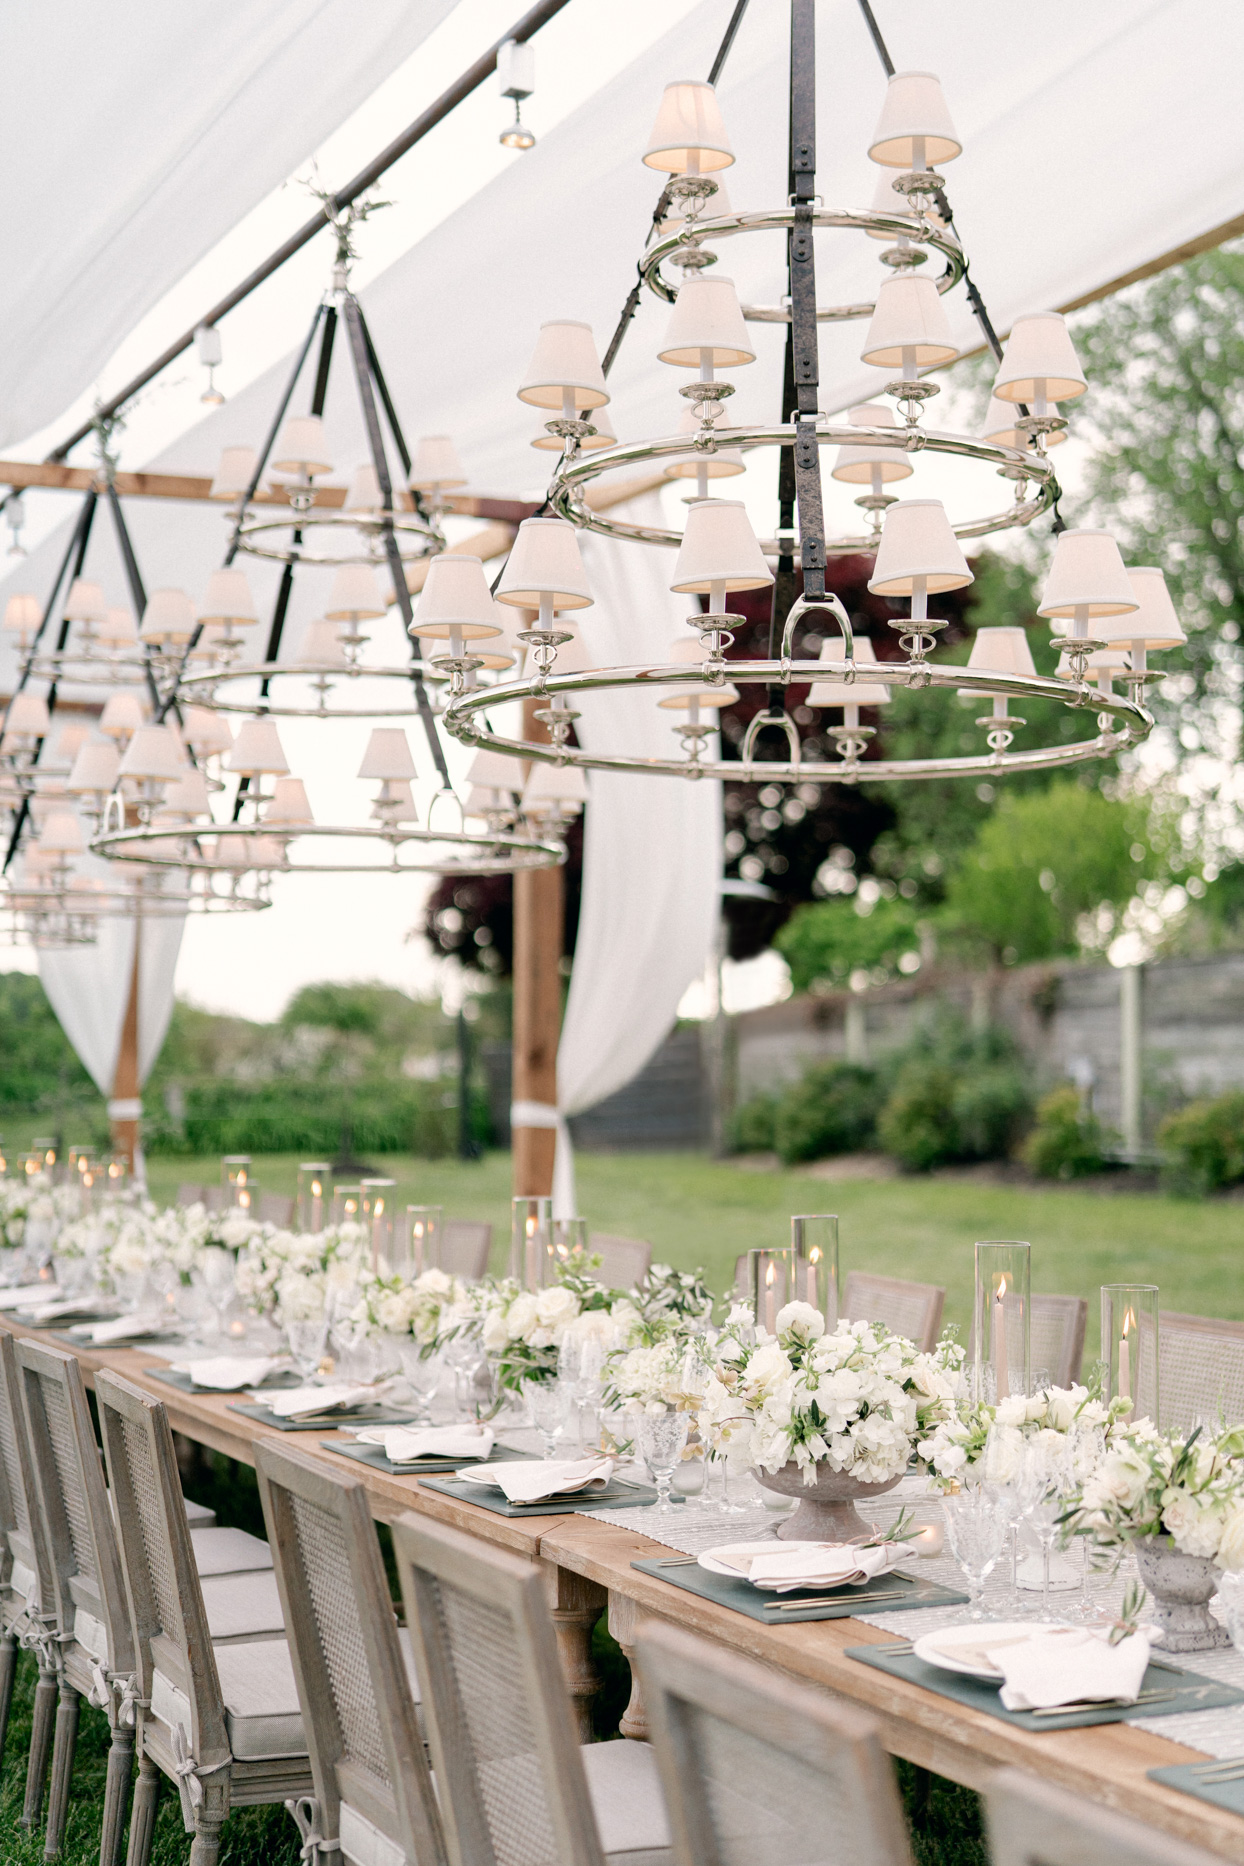 low white floral wedding reception table decor with candles